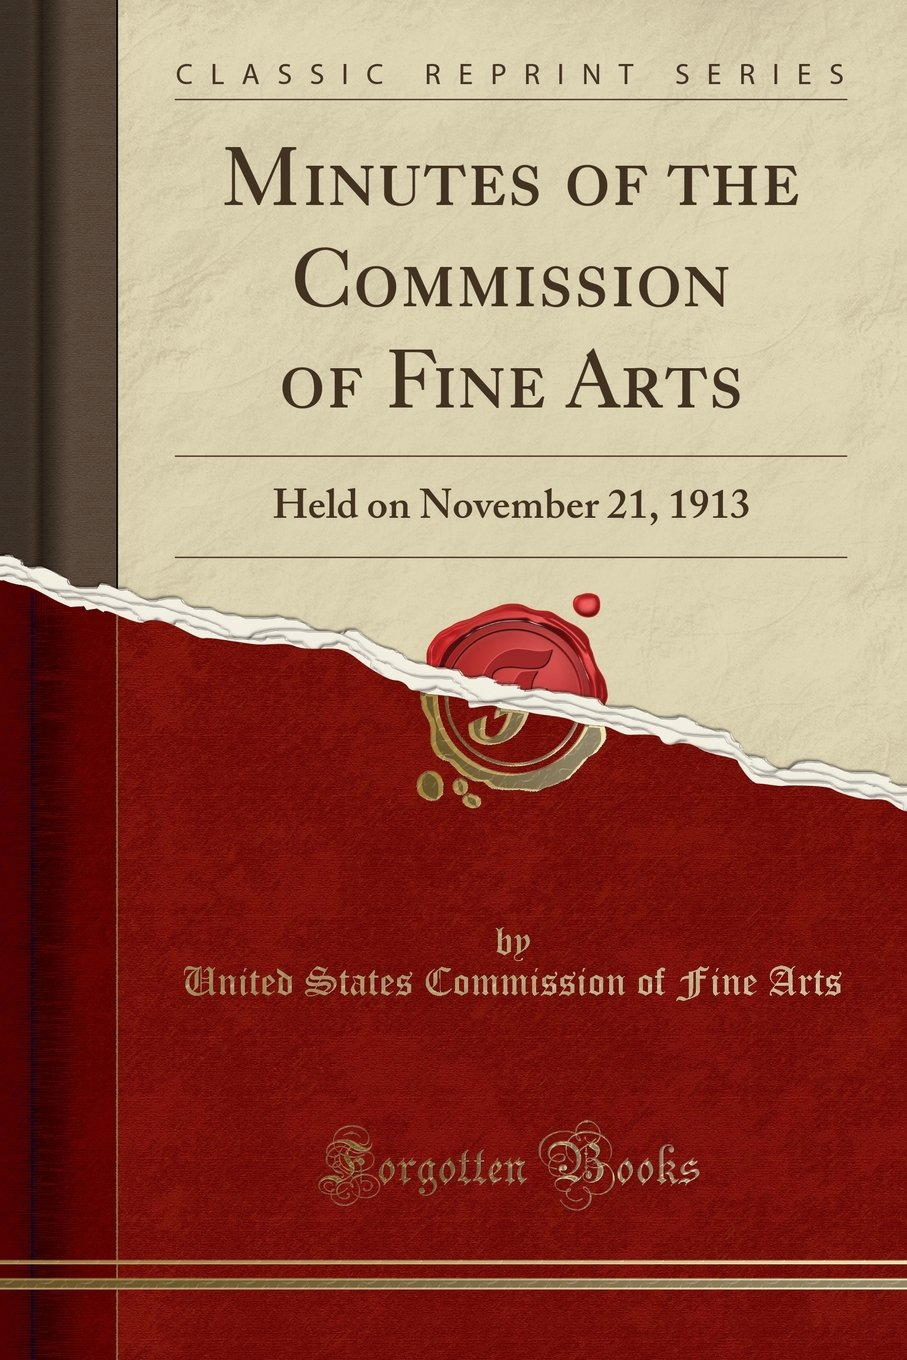 Minutes of the Commission of Fine Arts: Held on November 21, 1913 (Classic Reprint) ebook